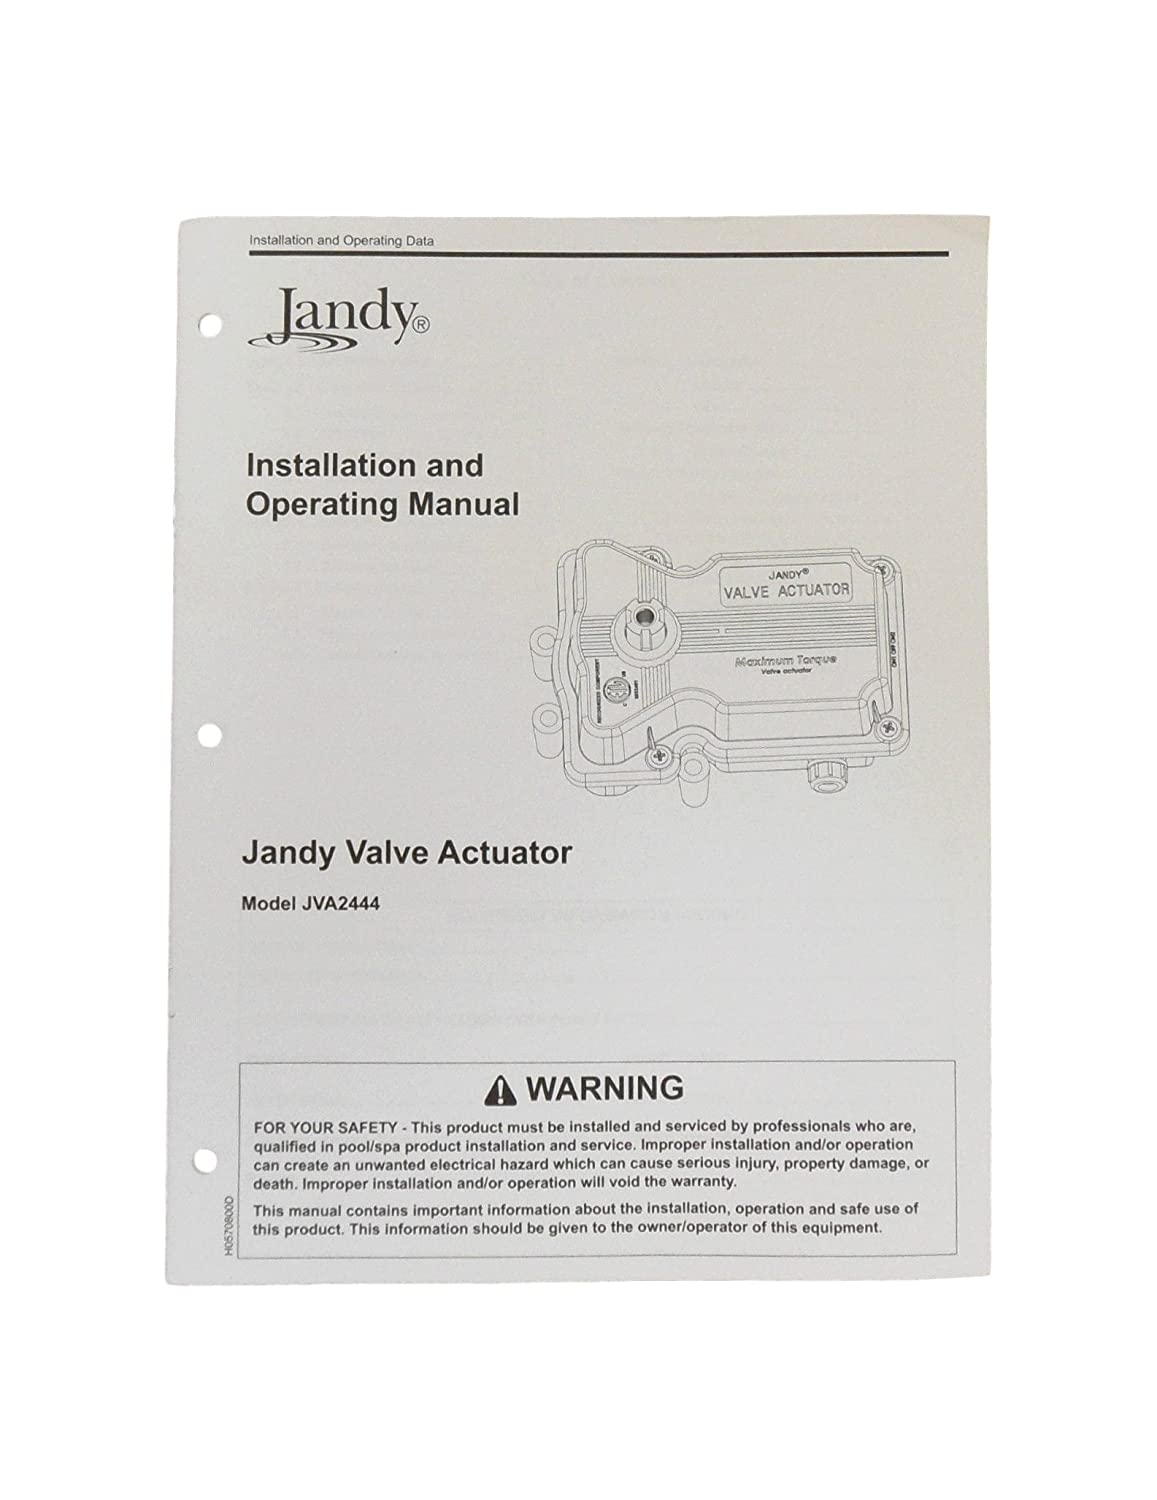 Amazon.com : Jandy JVA244 Valve Actuator Installation Owner's Manual  JVA-2444 : Garden & Outdoor